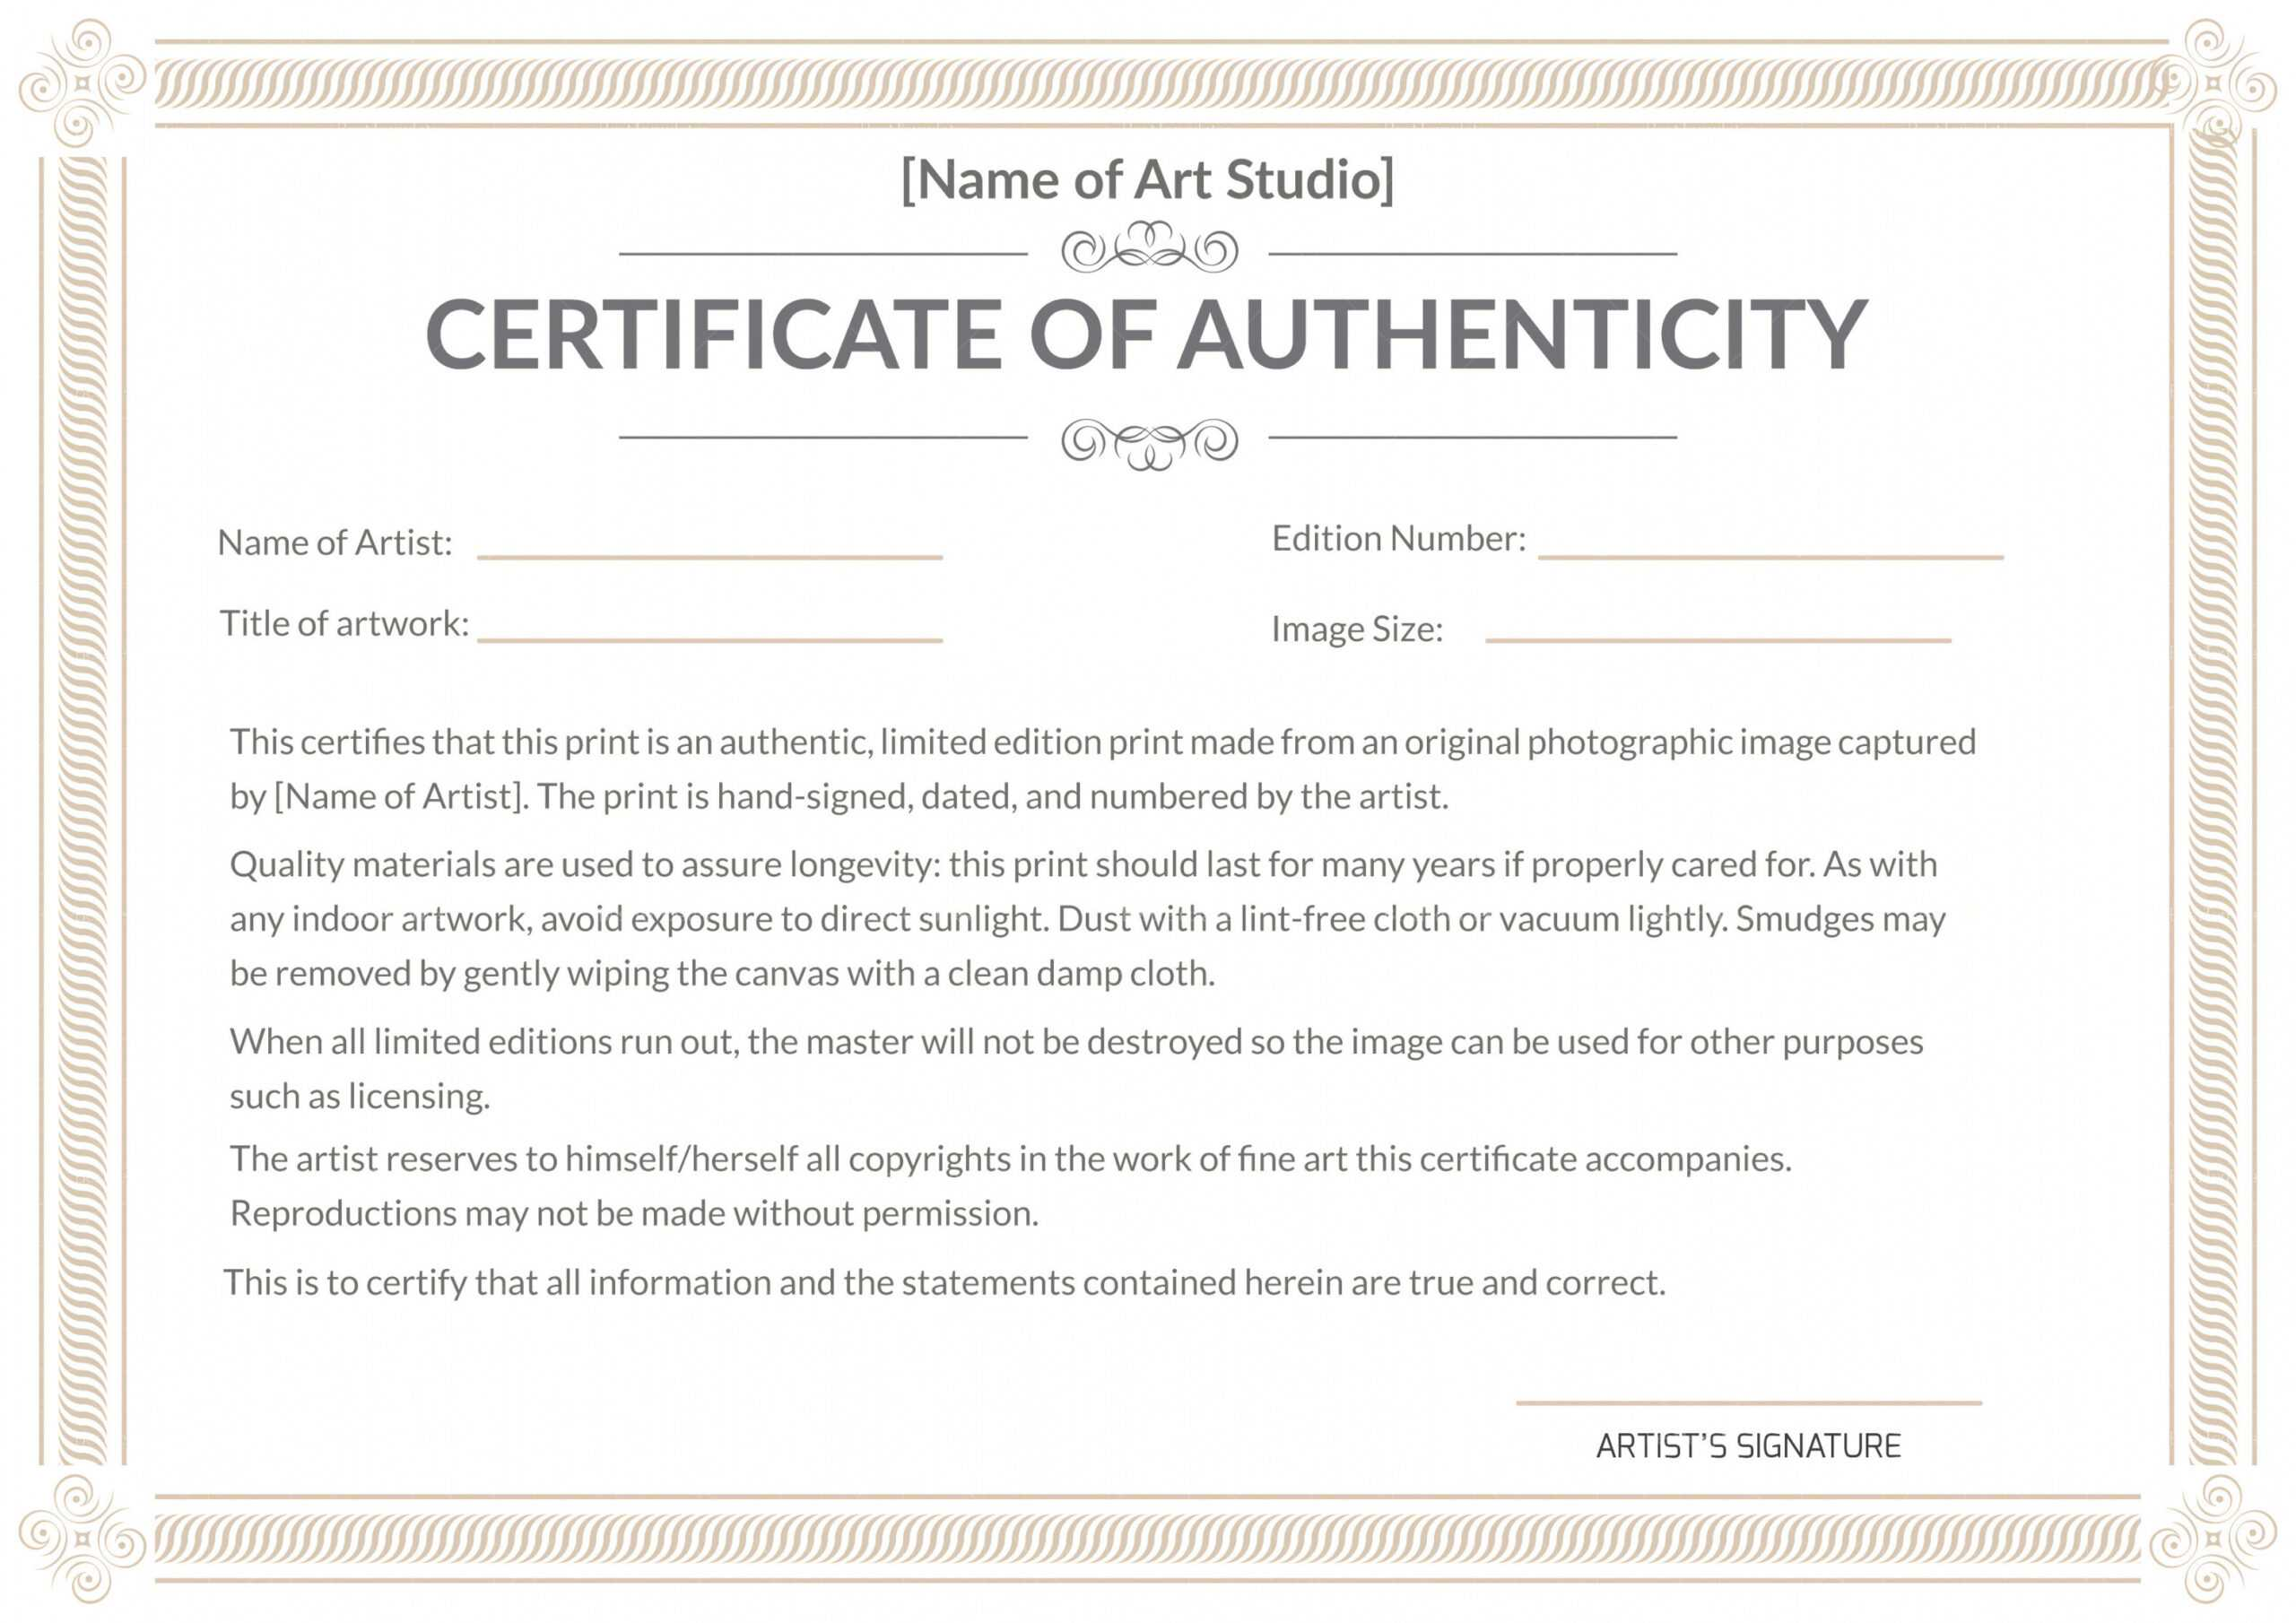 Certificate Of Authenticity Art Template - Zohre In Certificate Of Authenticity Photography Template